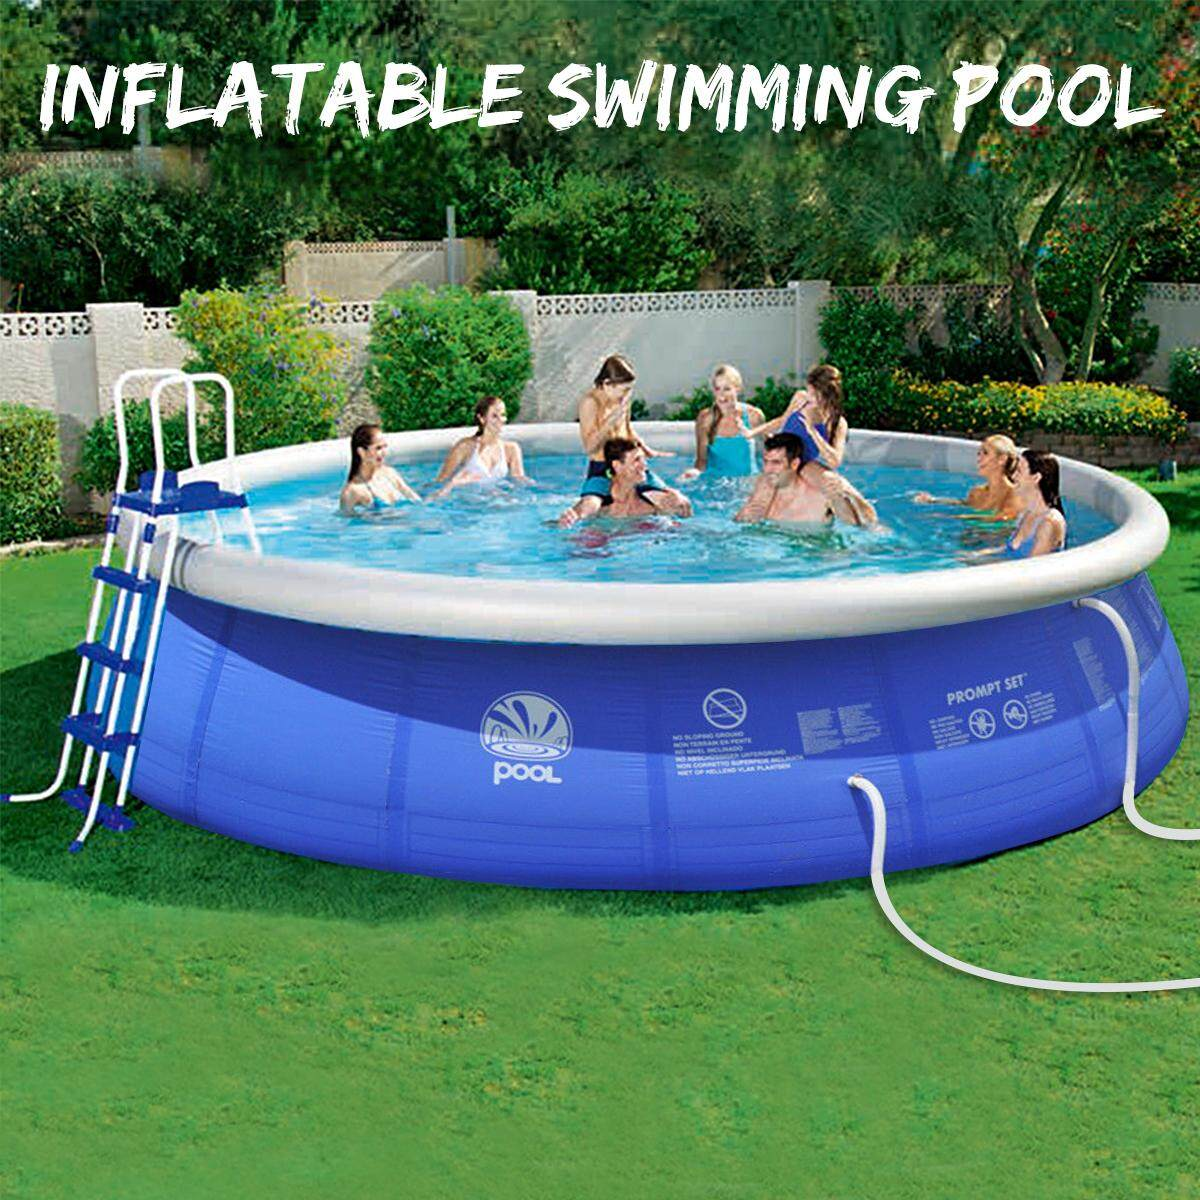 Bestway Frame Pool Untergrund Summer Outdoor Inflatable Swimming Pool Garden Family Pools Parent Child Paddling Pool Portable Big Capacity Children S Inflatable Pool